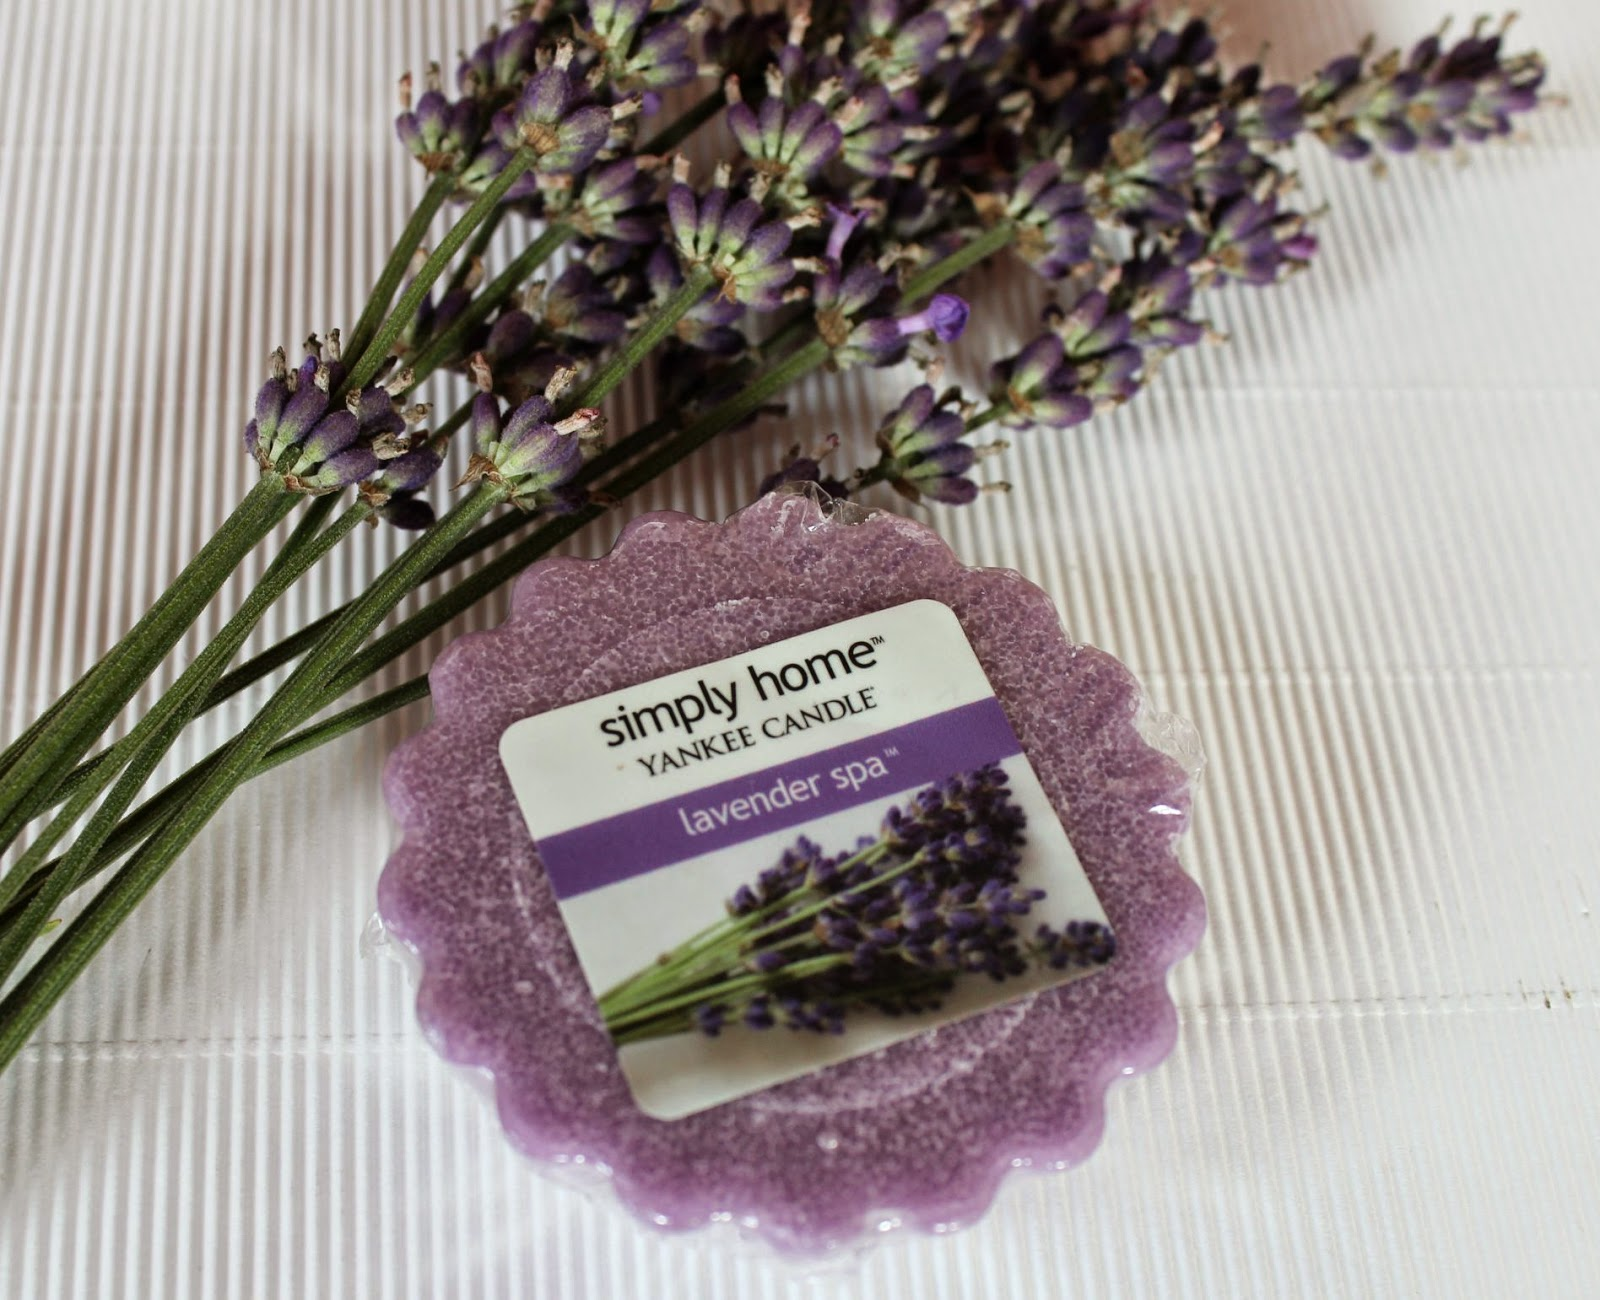 Yankee Candle Lavender SPA Simply Home